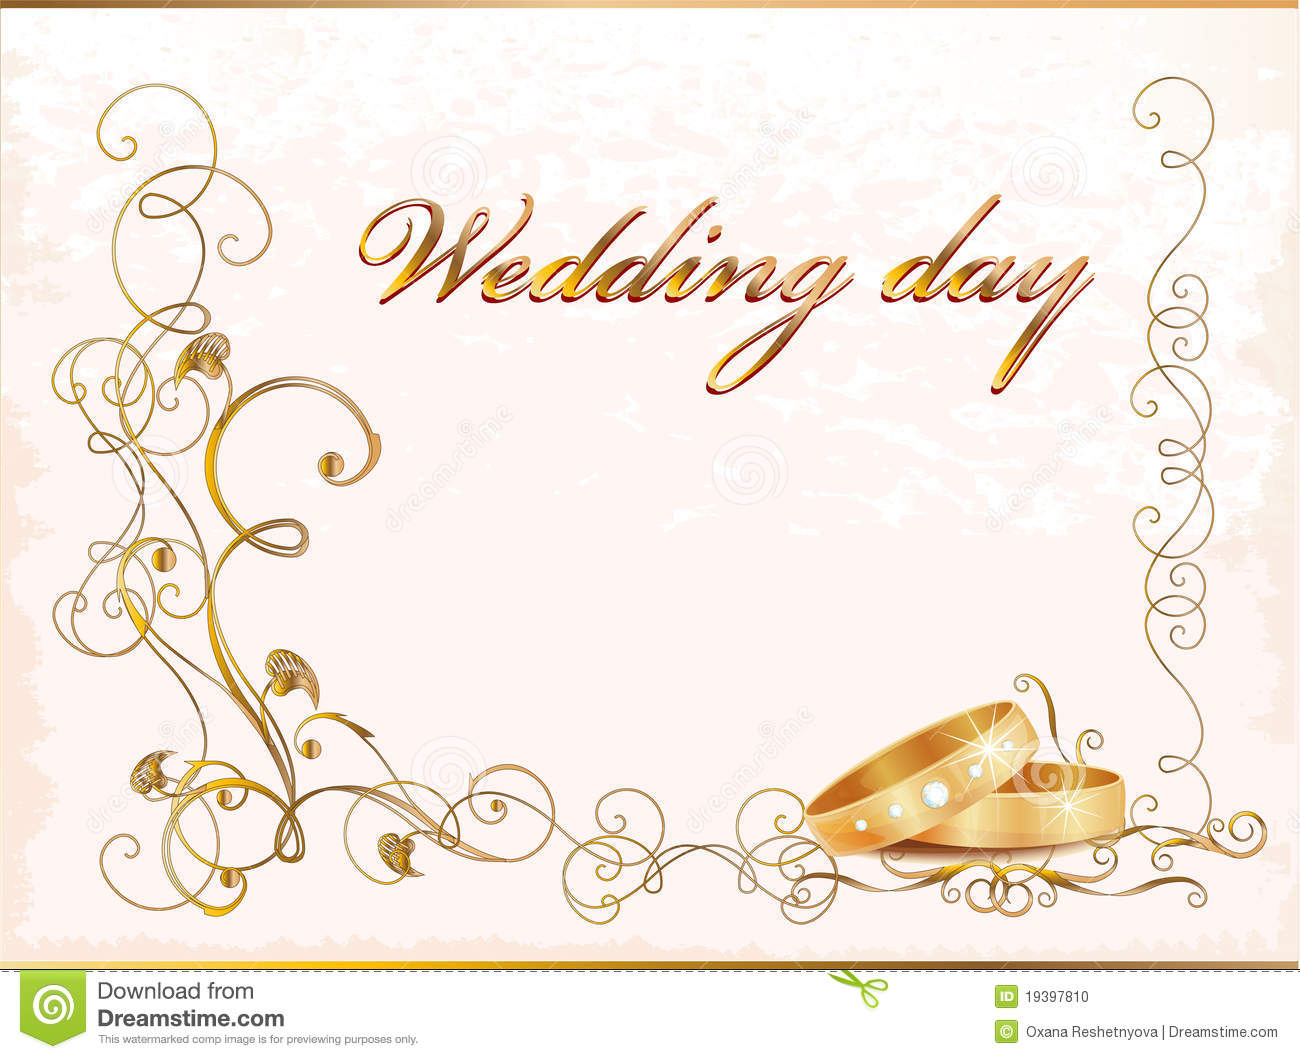 Ring Ceremony Hd Wallpaper Vintage Wedding Card Stock Photo Image 19397810